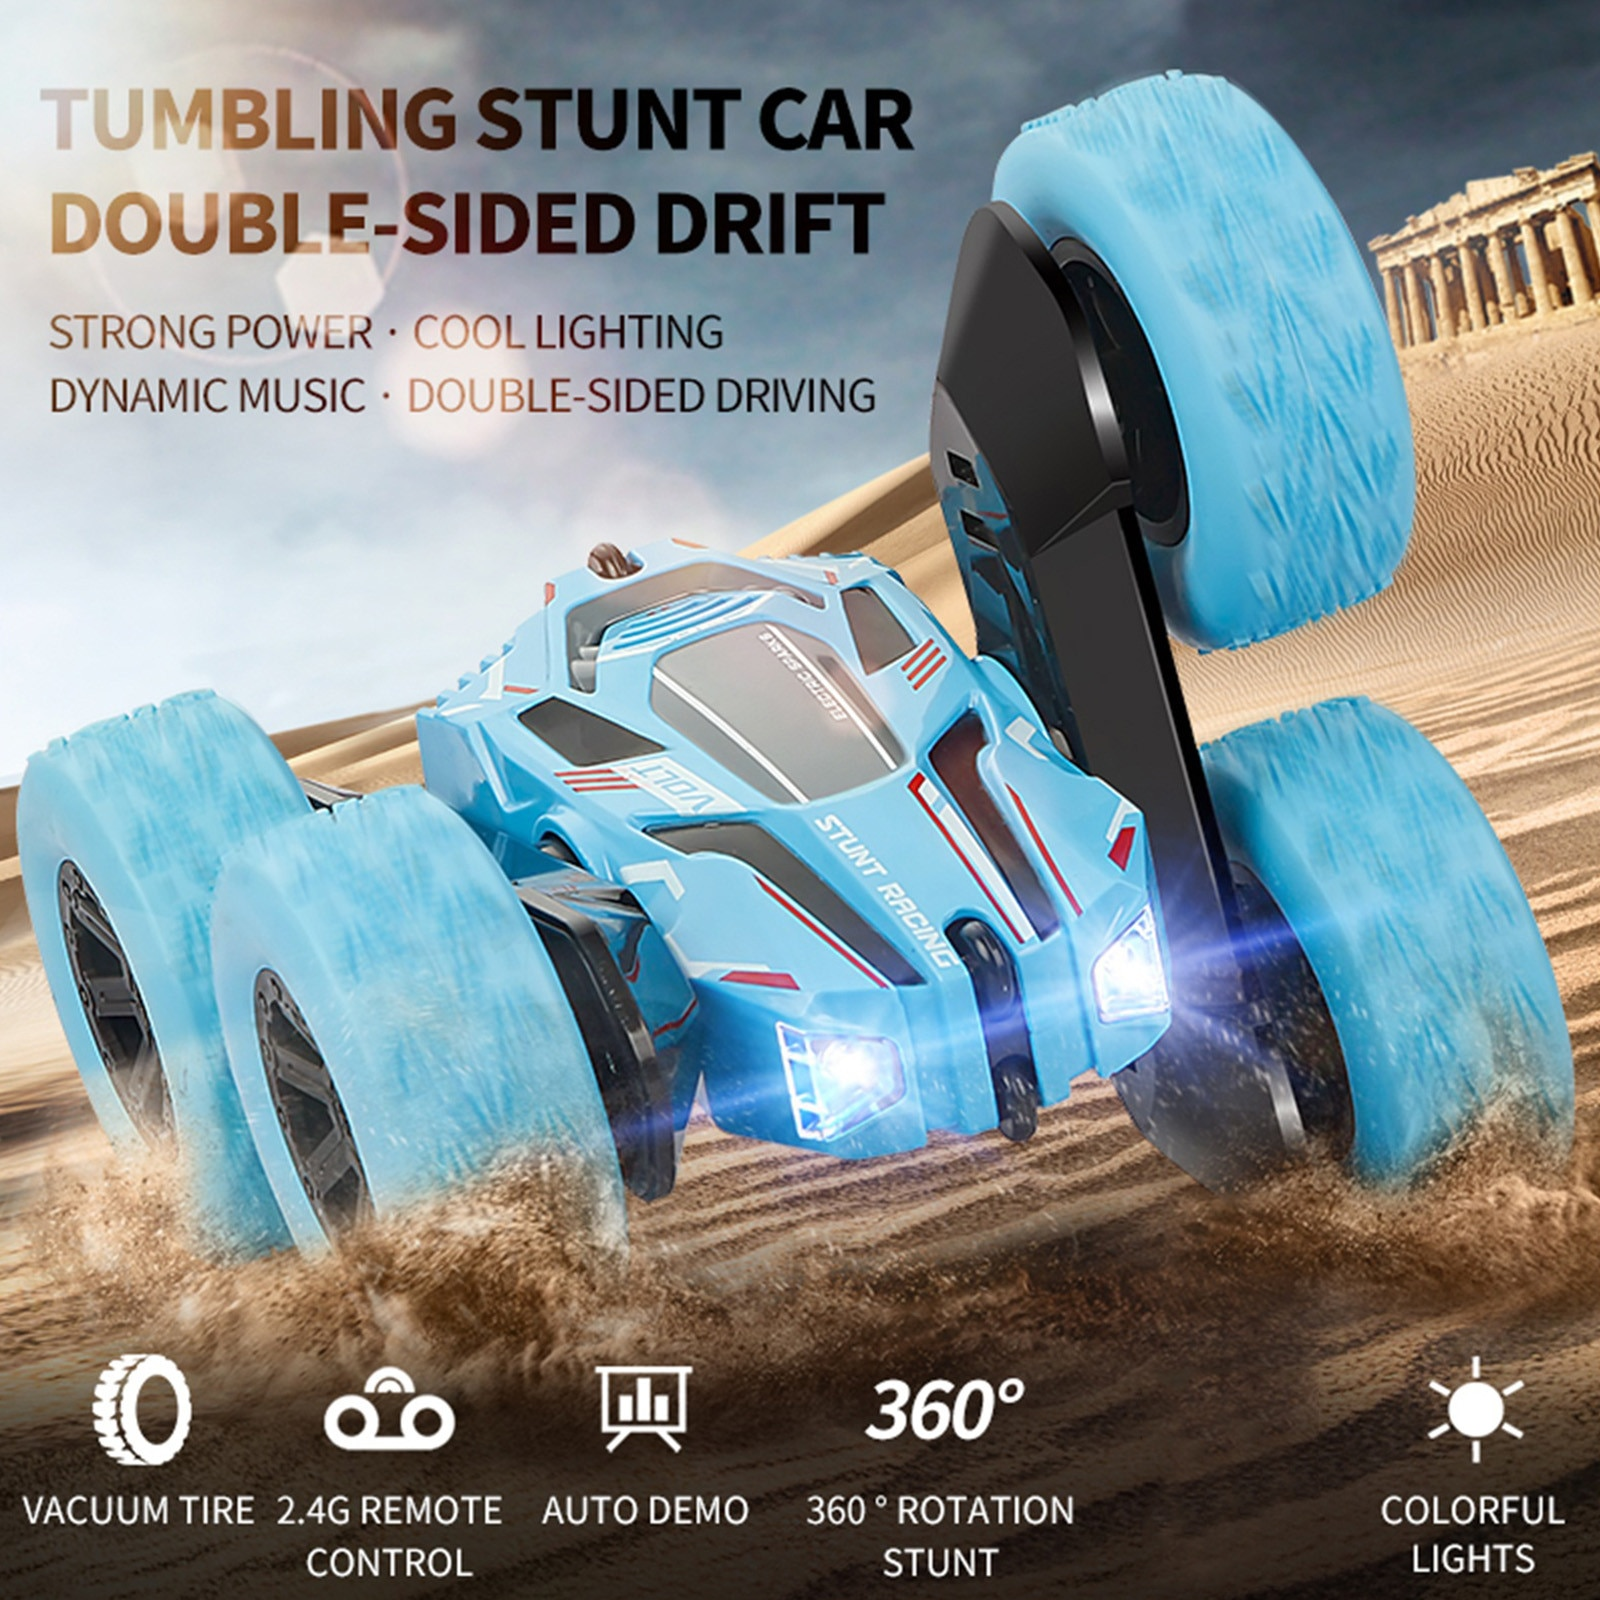 1:28 4WD Double-Sided 360° Tumbling Bucket Remote Control Car High Speed Racing Rc Car Children's Toy Gift for Boys Girls Kids enlarge